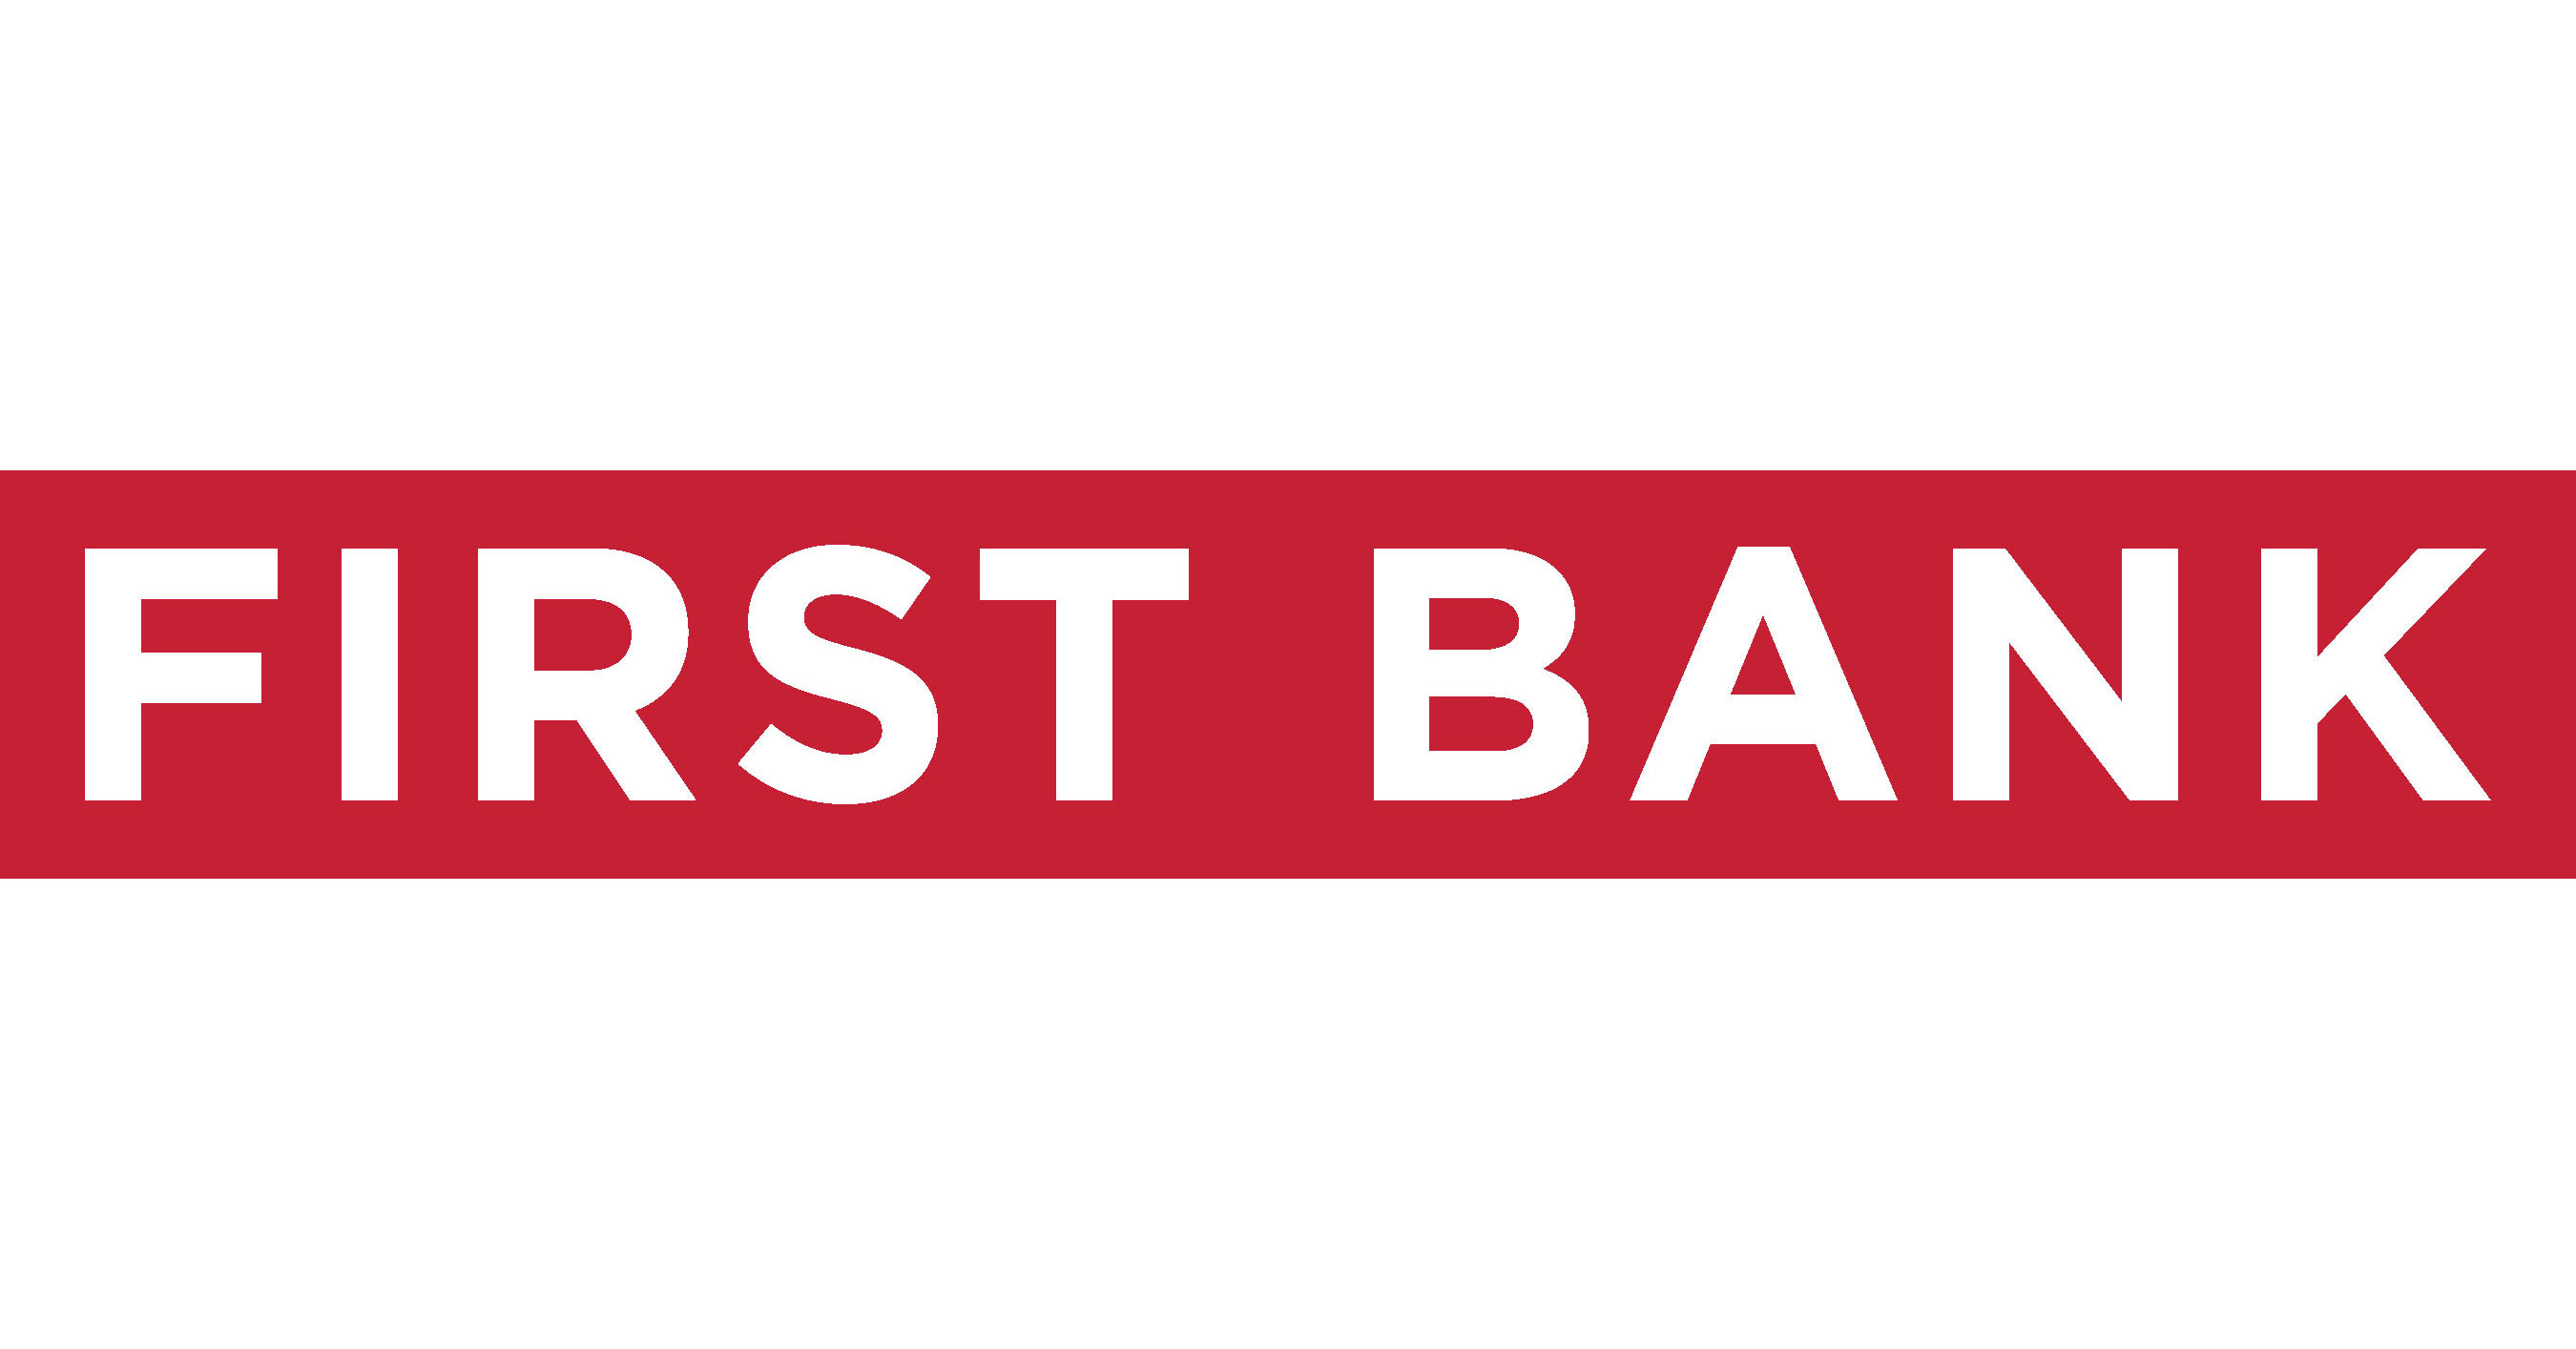 First Bancorp Announces 50% Cash Dividend Increase & New Share Repurchase Authorization